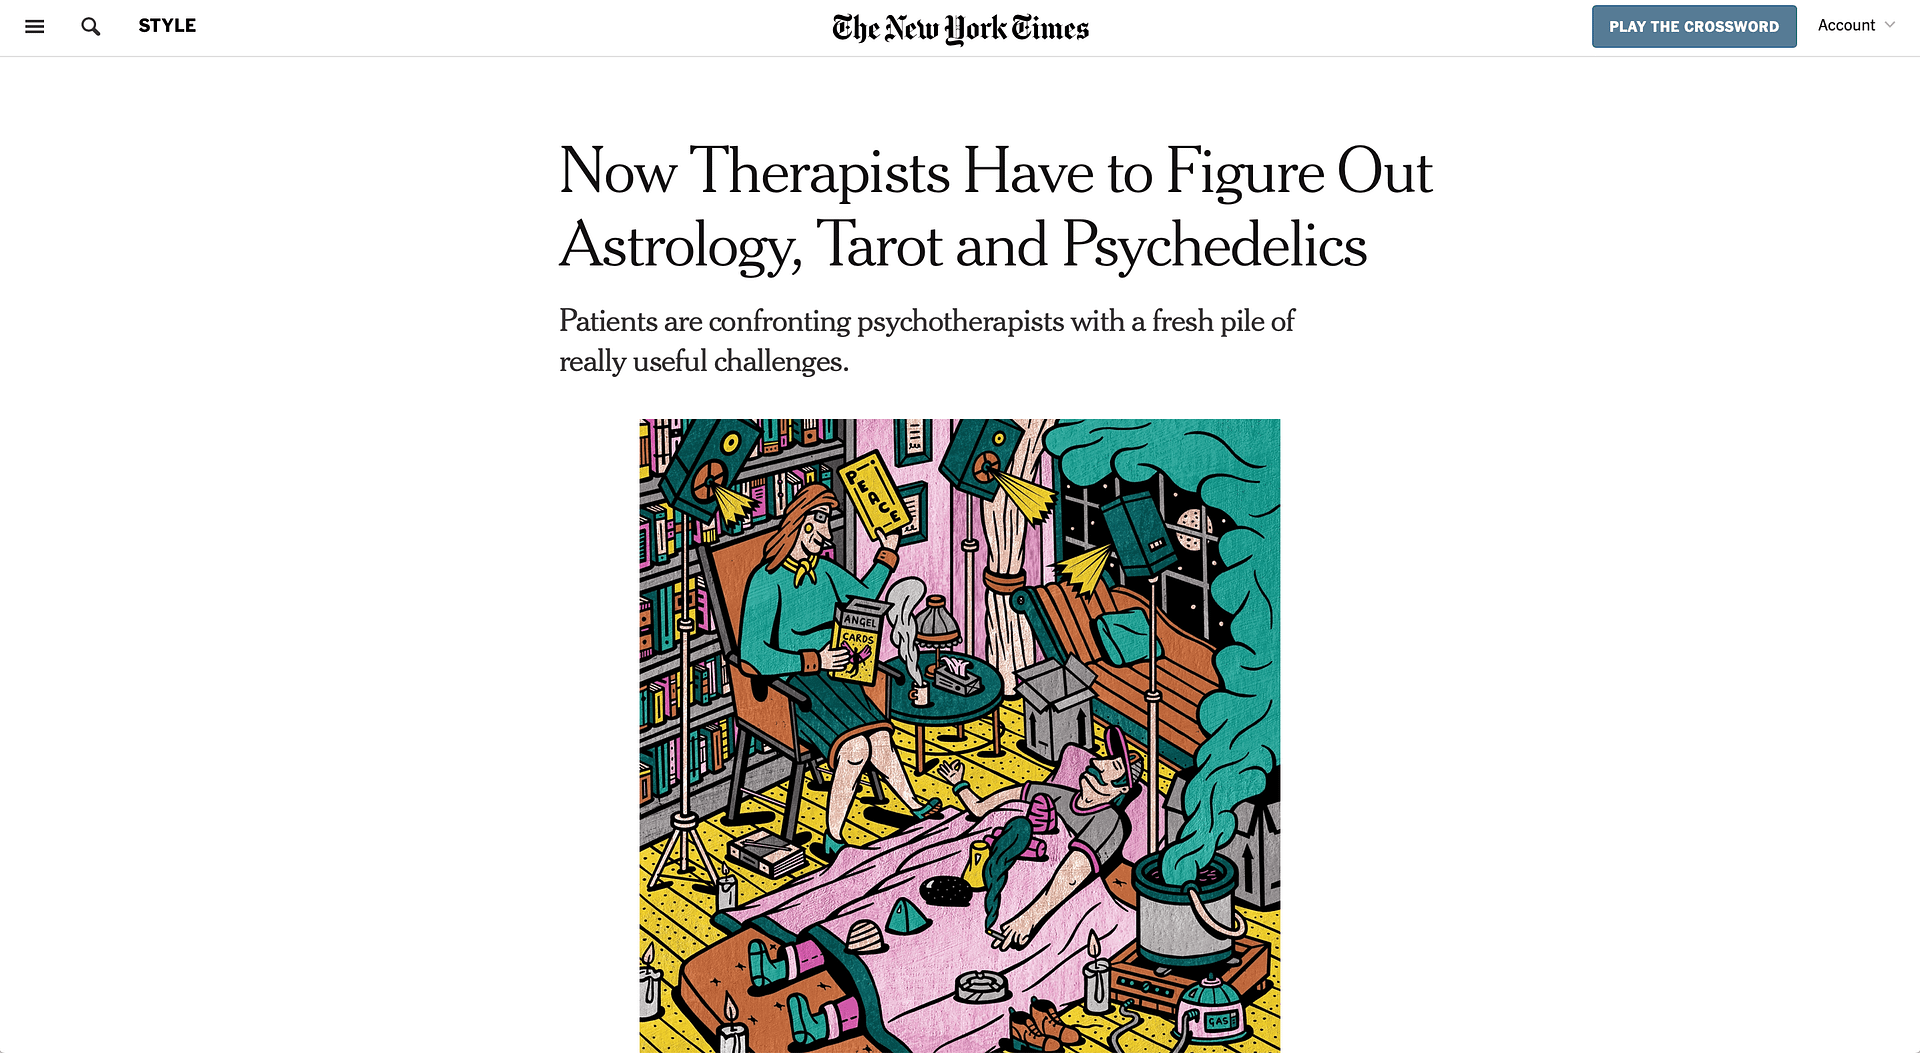 Therapists Figure Out Astrology, Tarot (NY Times) | LPTG Quote